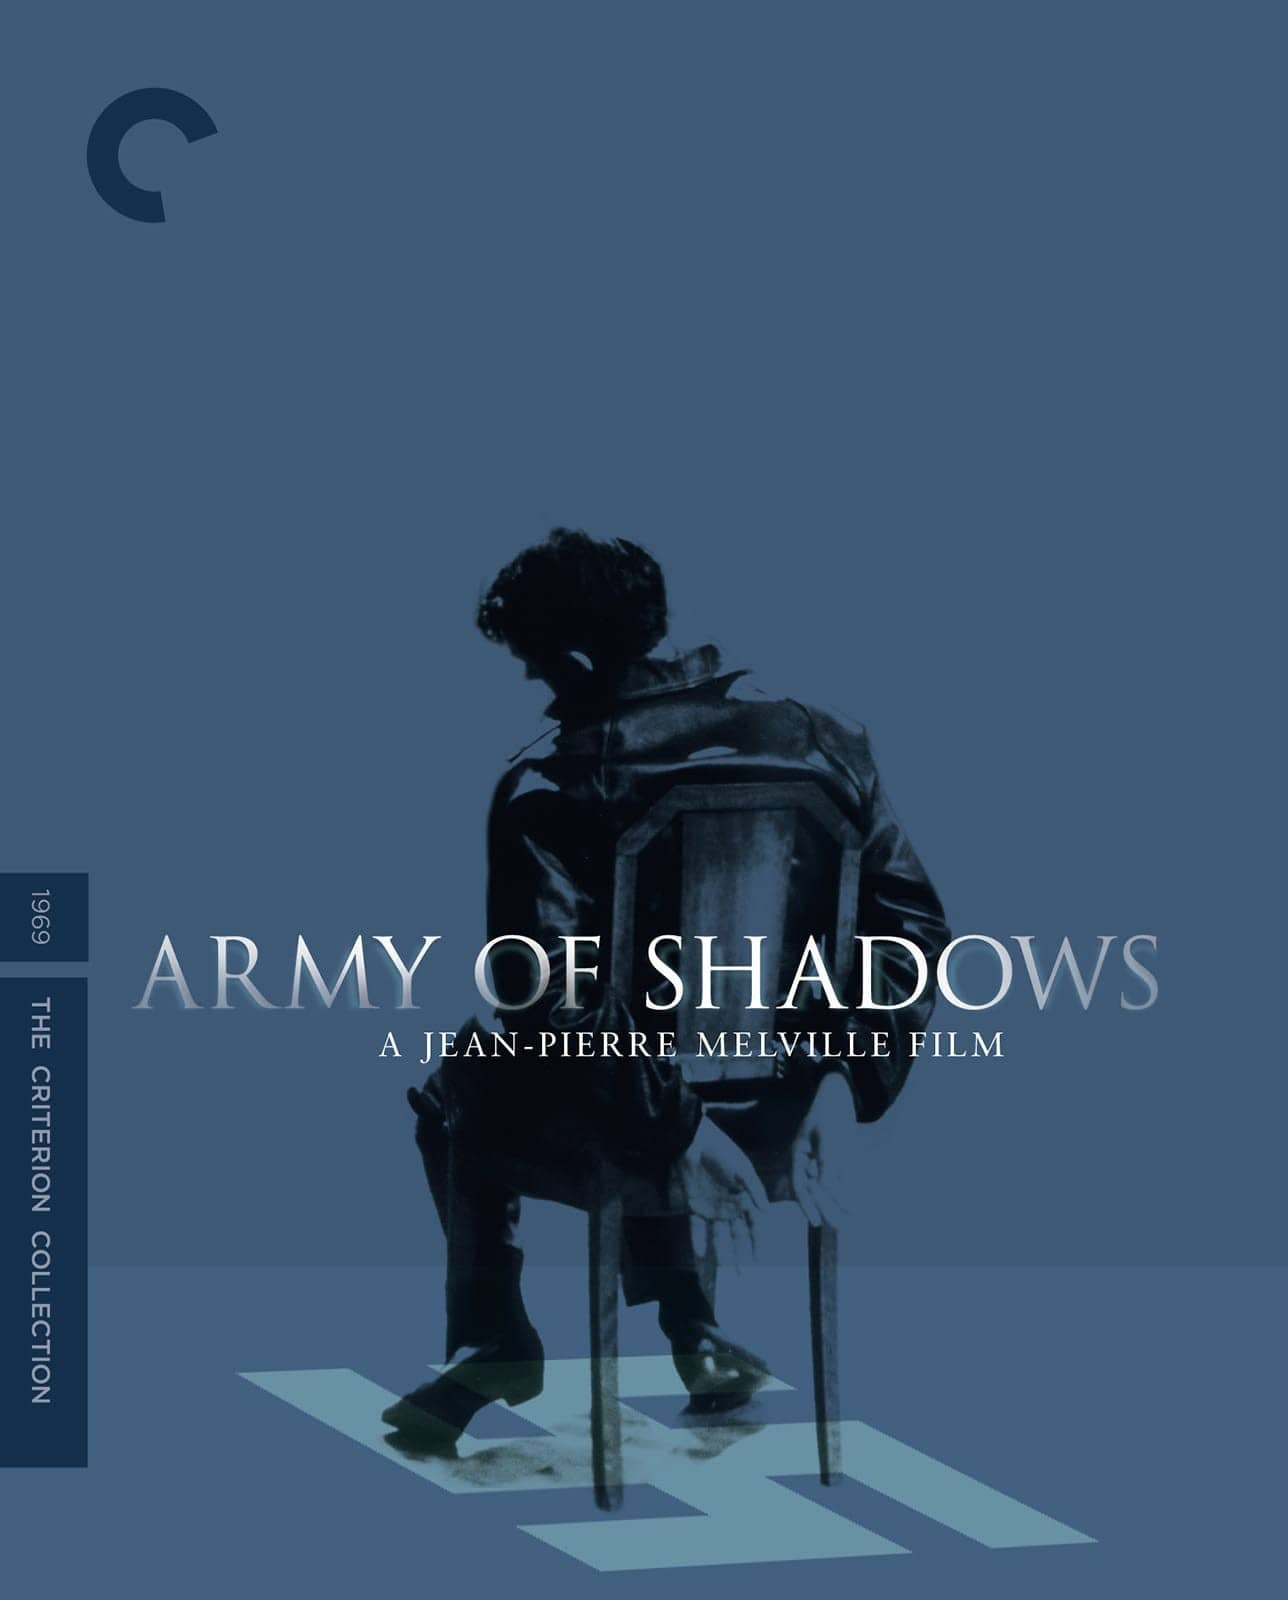 Army Of Shadows Criterion Bluray